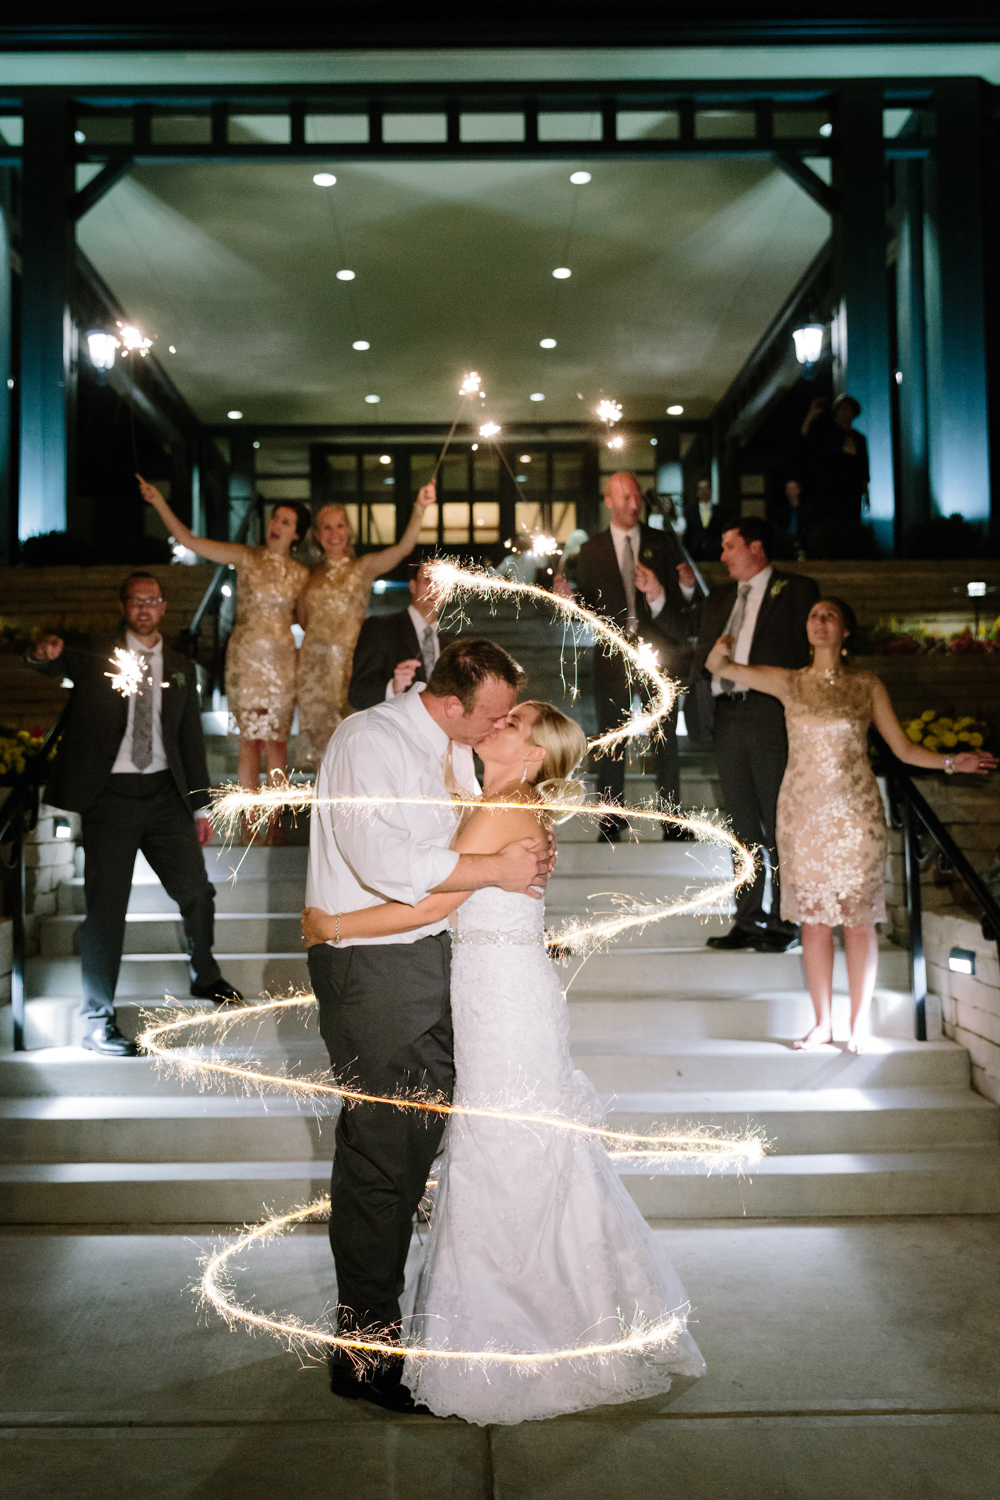 BridalPulse - Golf Lovers' Country Club Wedding - bride and groom kiss with sparklers surrounding them